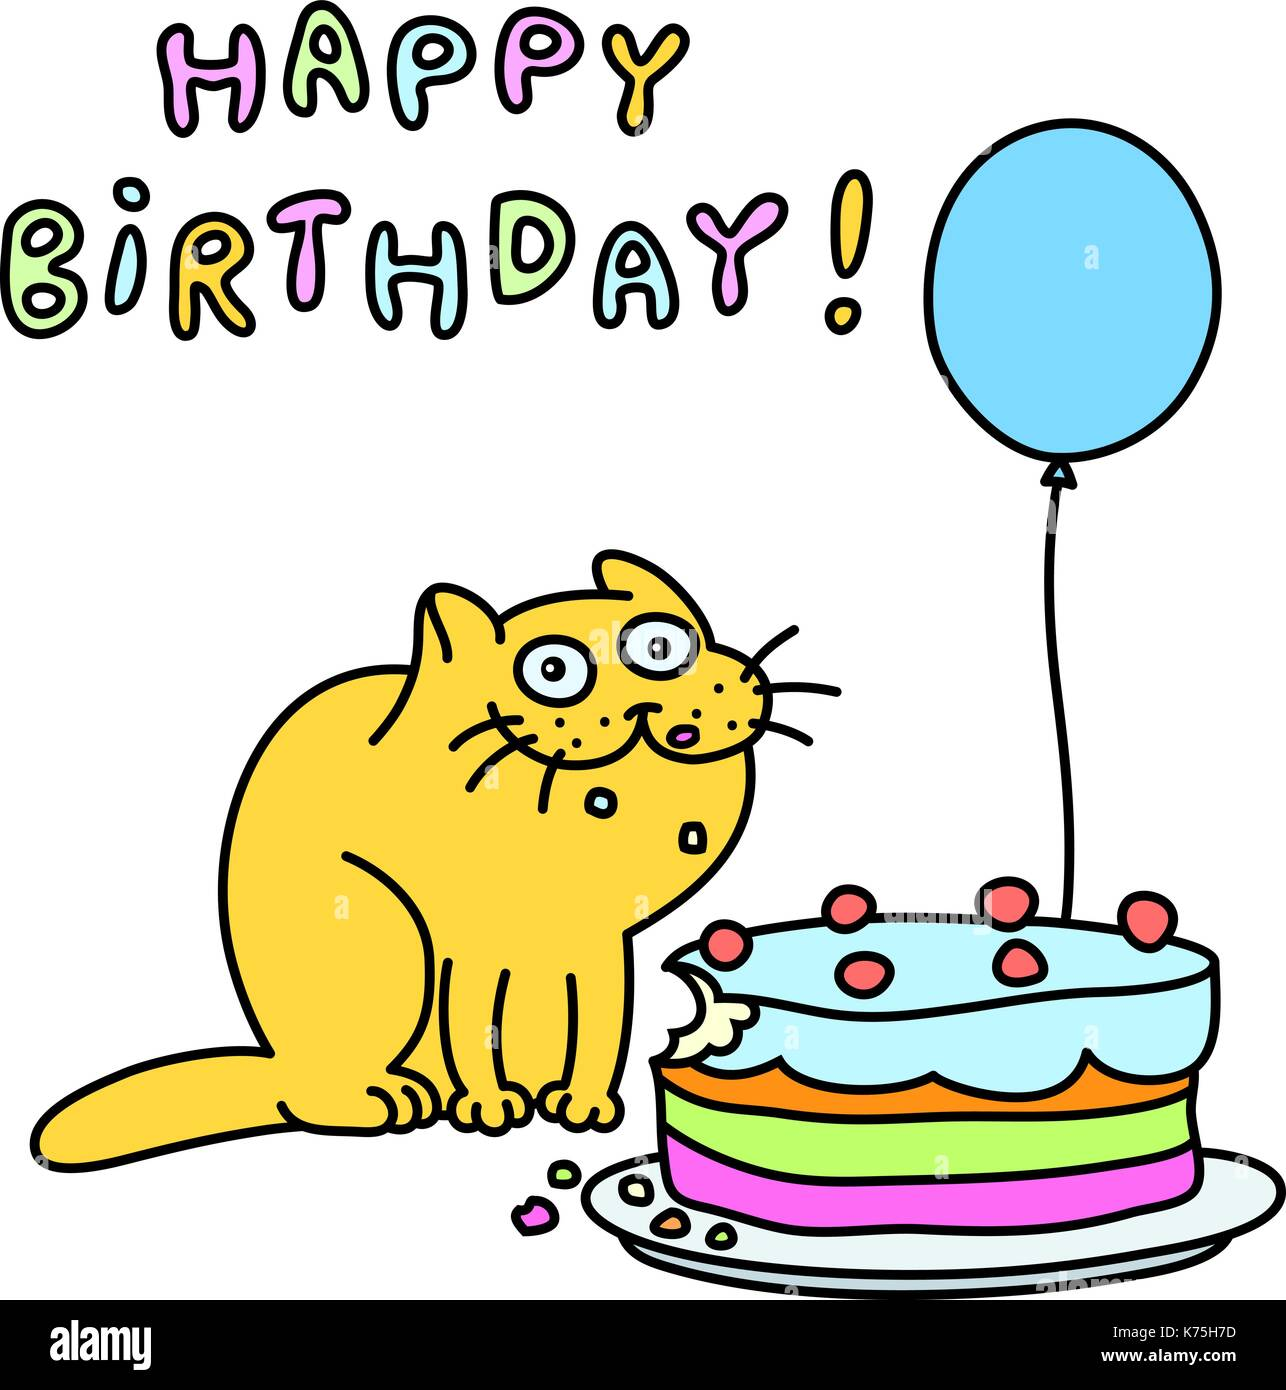 Funny Cat With A Cake And A Balloon Congratulates Happy Birthday Vector Illustration Stock Vector Image Art Alamy